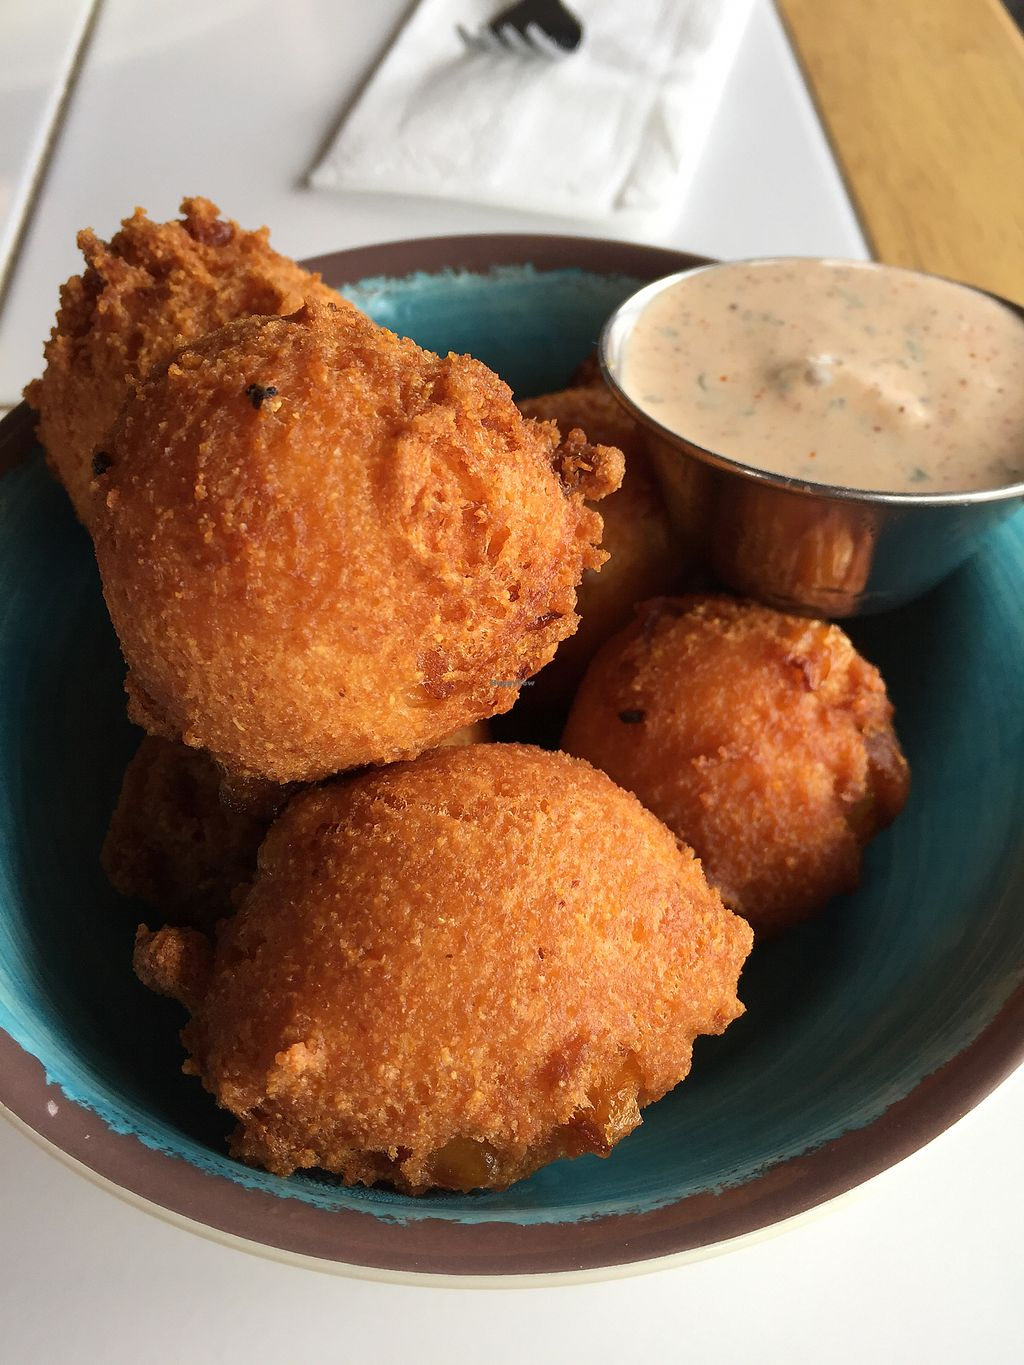 """Photo of Krimsey's Cajun Kitchen  by <a href=""""/members/profile/heathenvegan"""">heathenvegan</a> <br/>Hushpuppies <br/> March 3, 2018  - <a href='/contact/abuse/image/71919/366293'>Report</a>"""